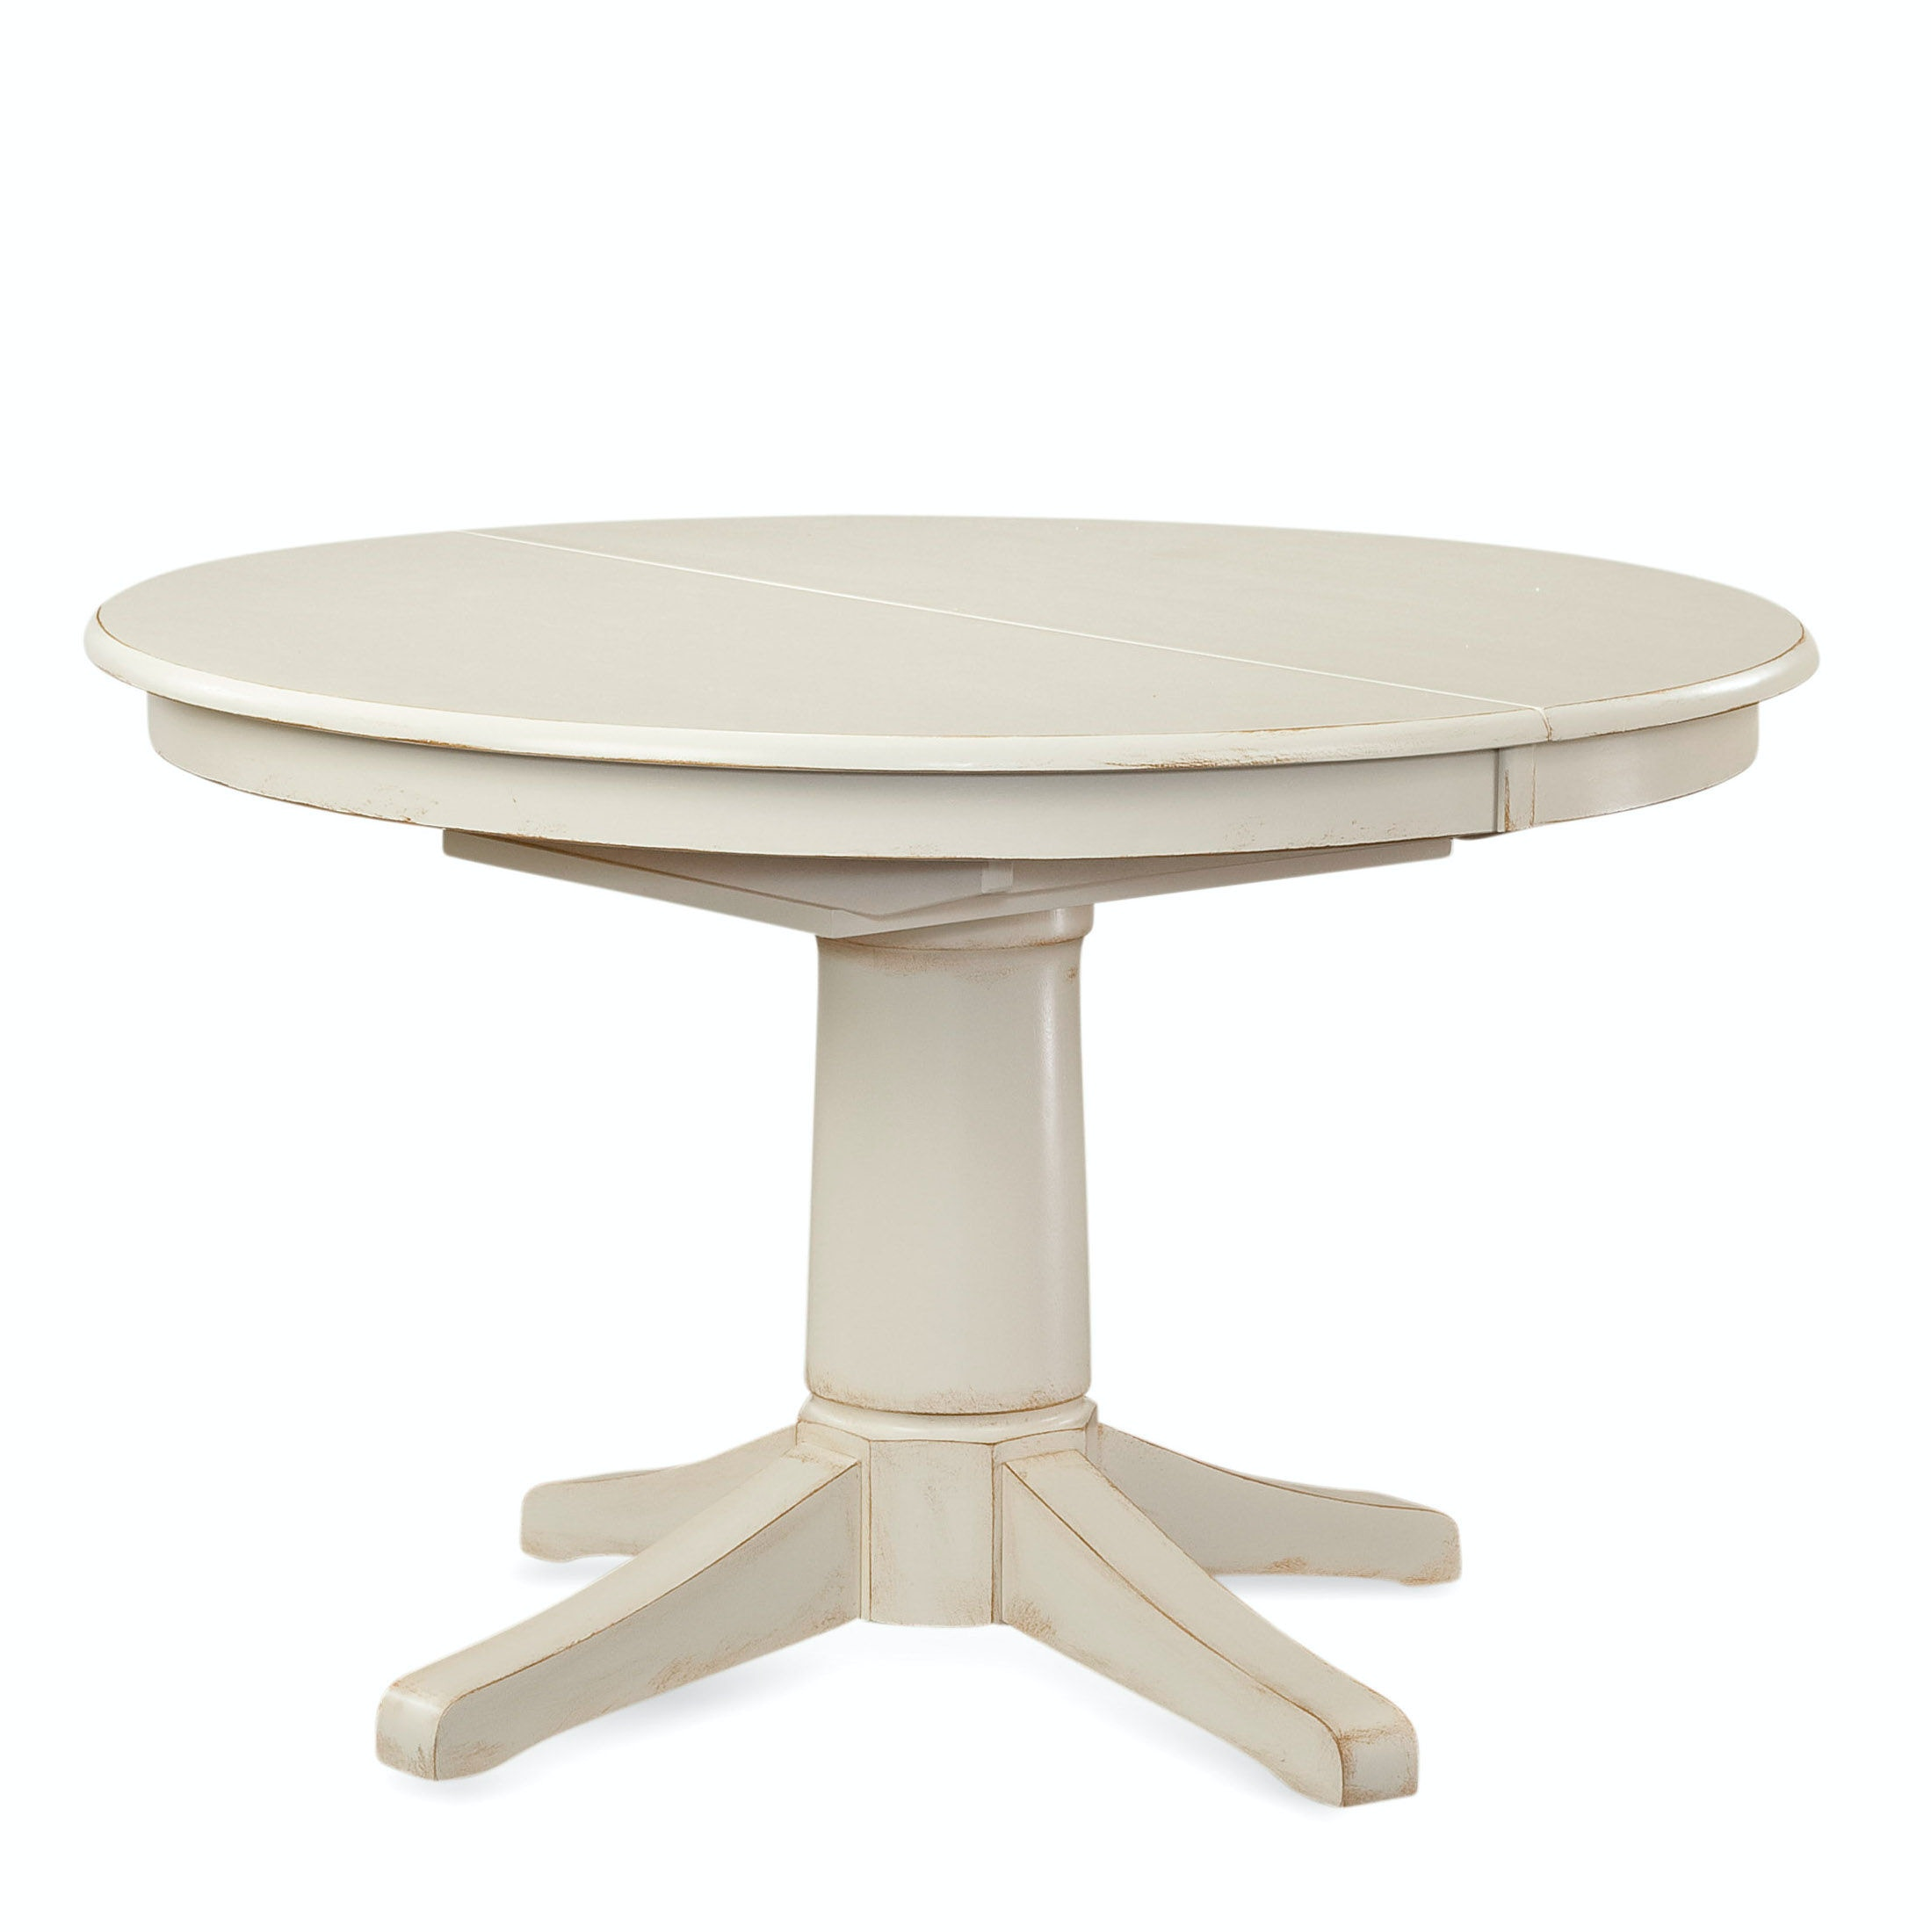 Braxton Culler Hues Round/Oval Dining Table 1064 E75